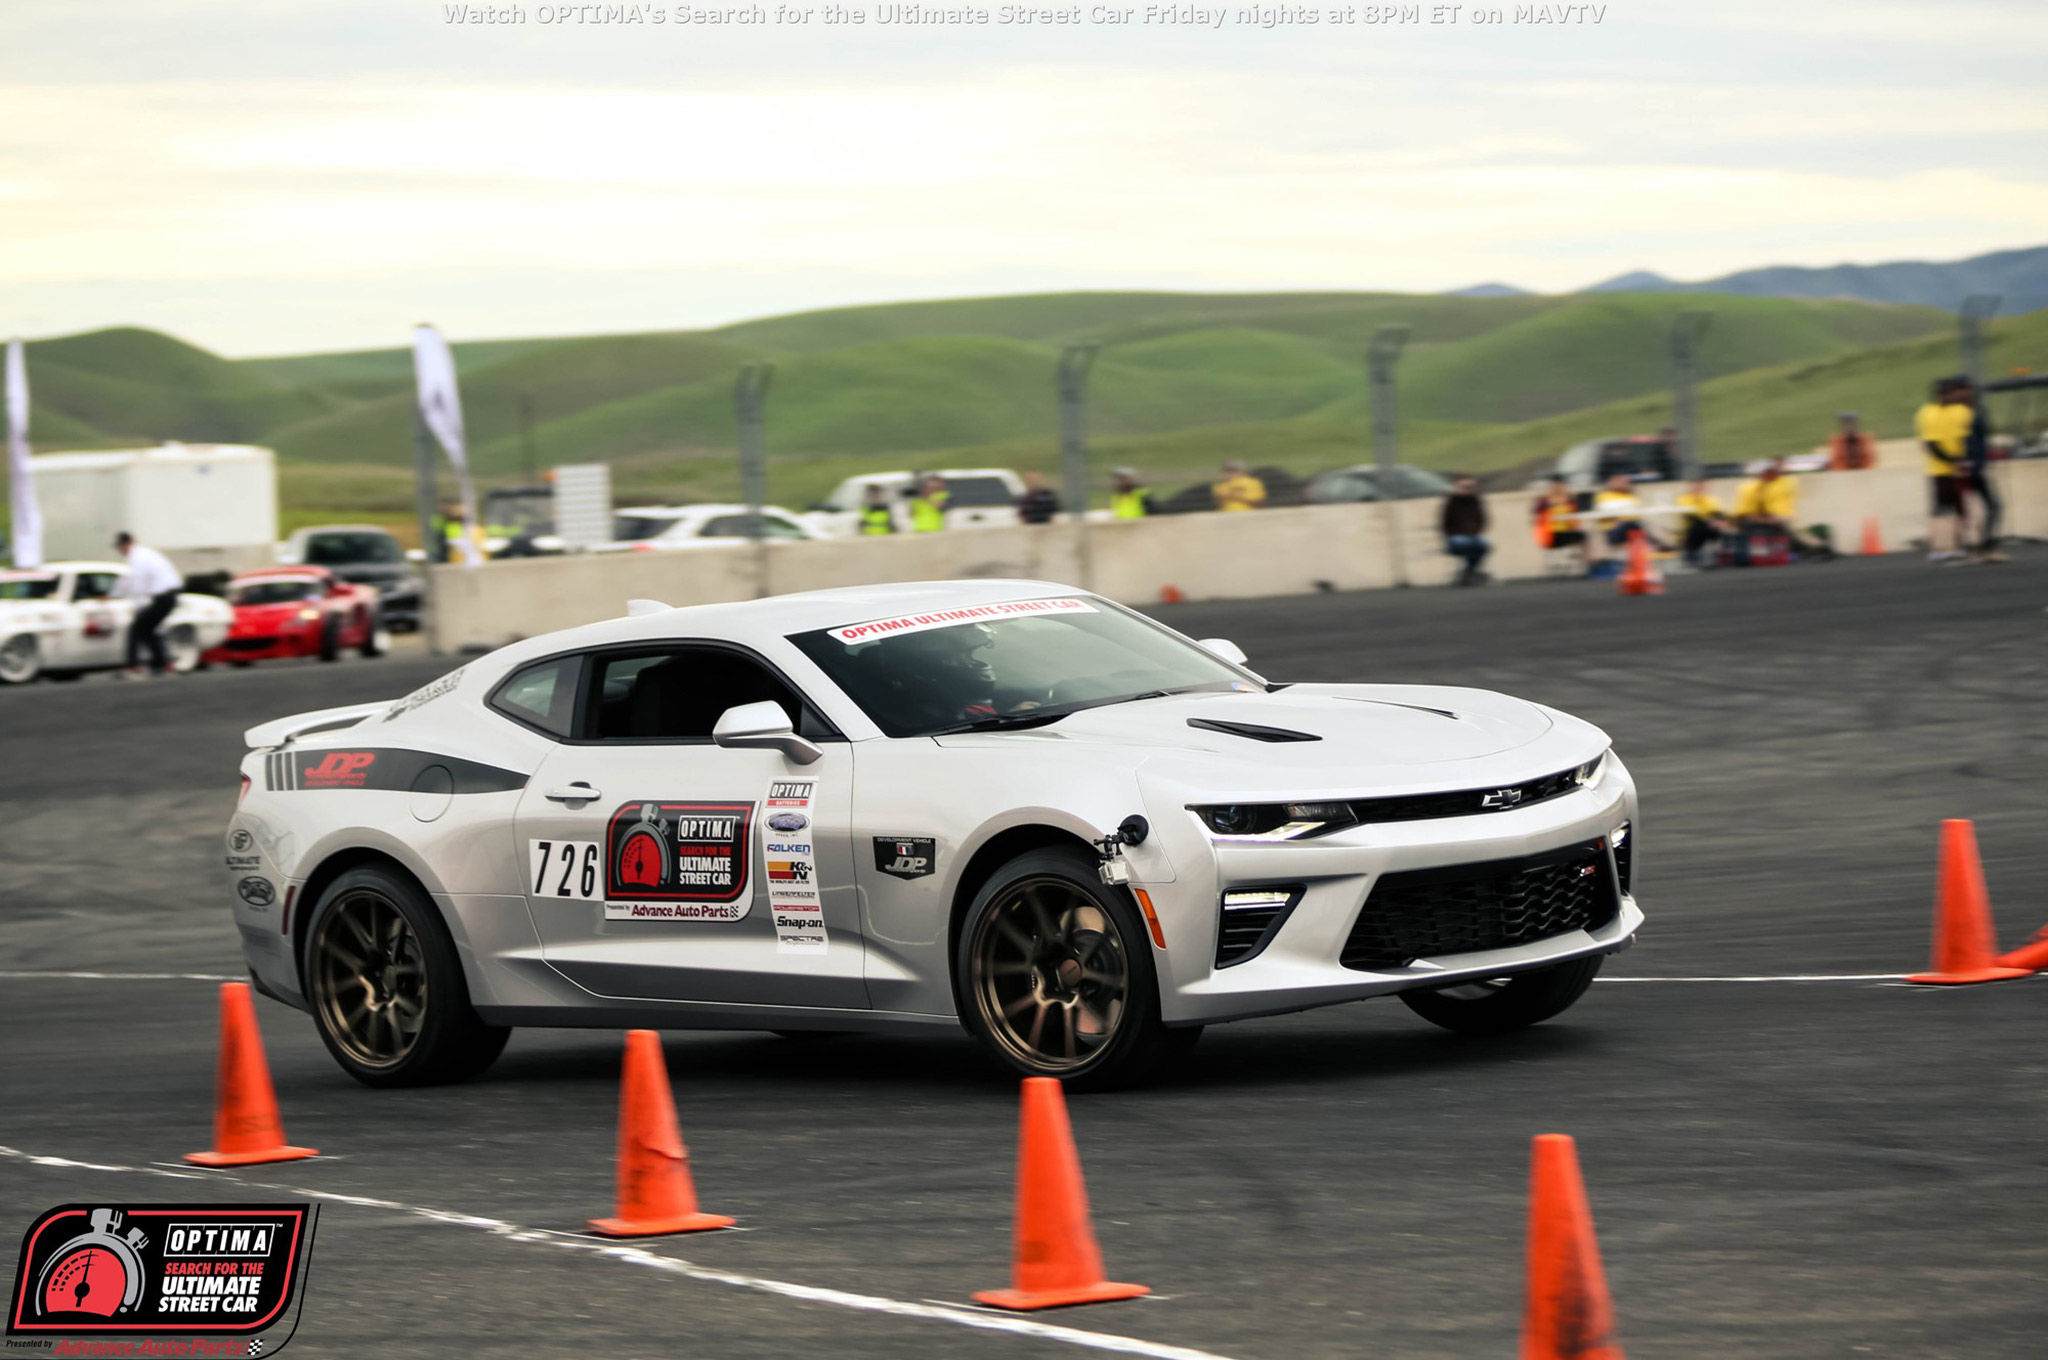 Jordan Priestley did double duty at Thunderhill, running both his 2011 and 2016 Camaros in the event. The sixth-gen had an impressive debut, as it finished Third in the GT class, with not much more than a set of wheels making it different than a bone-stock Camaro. Look for this platform to really put some distance on the Ponycar competition!